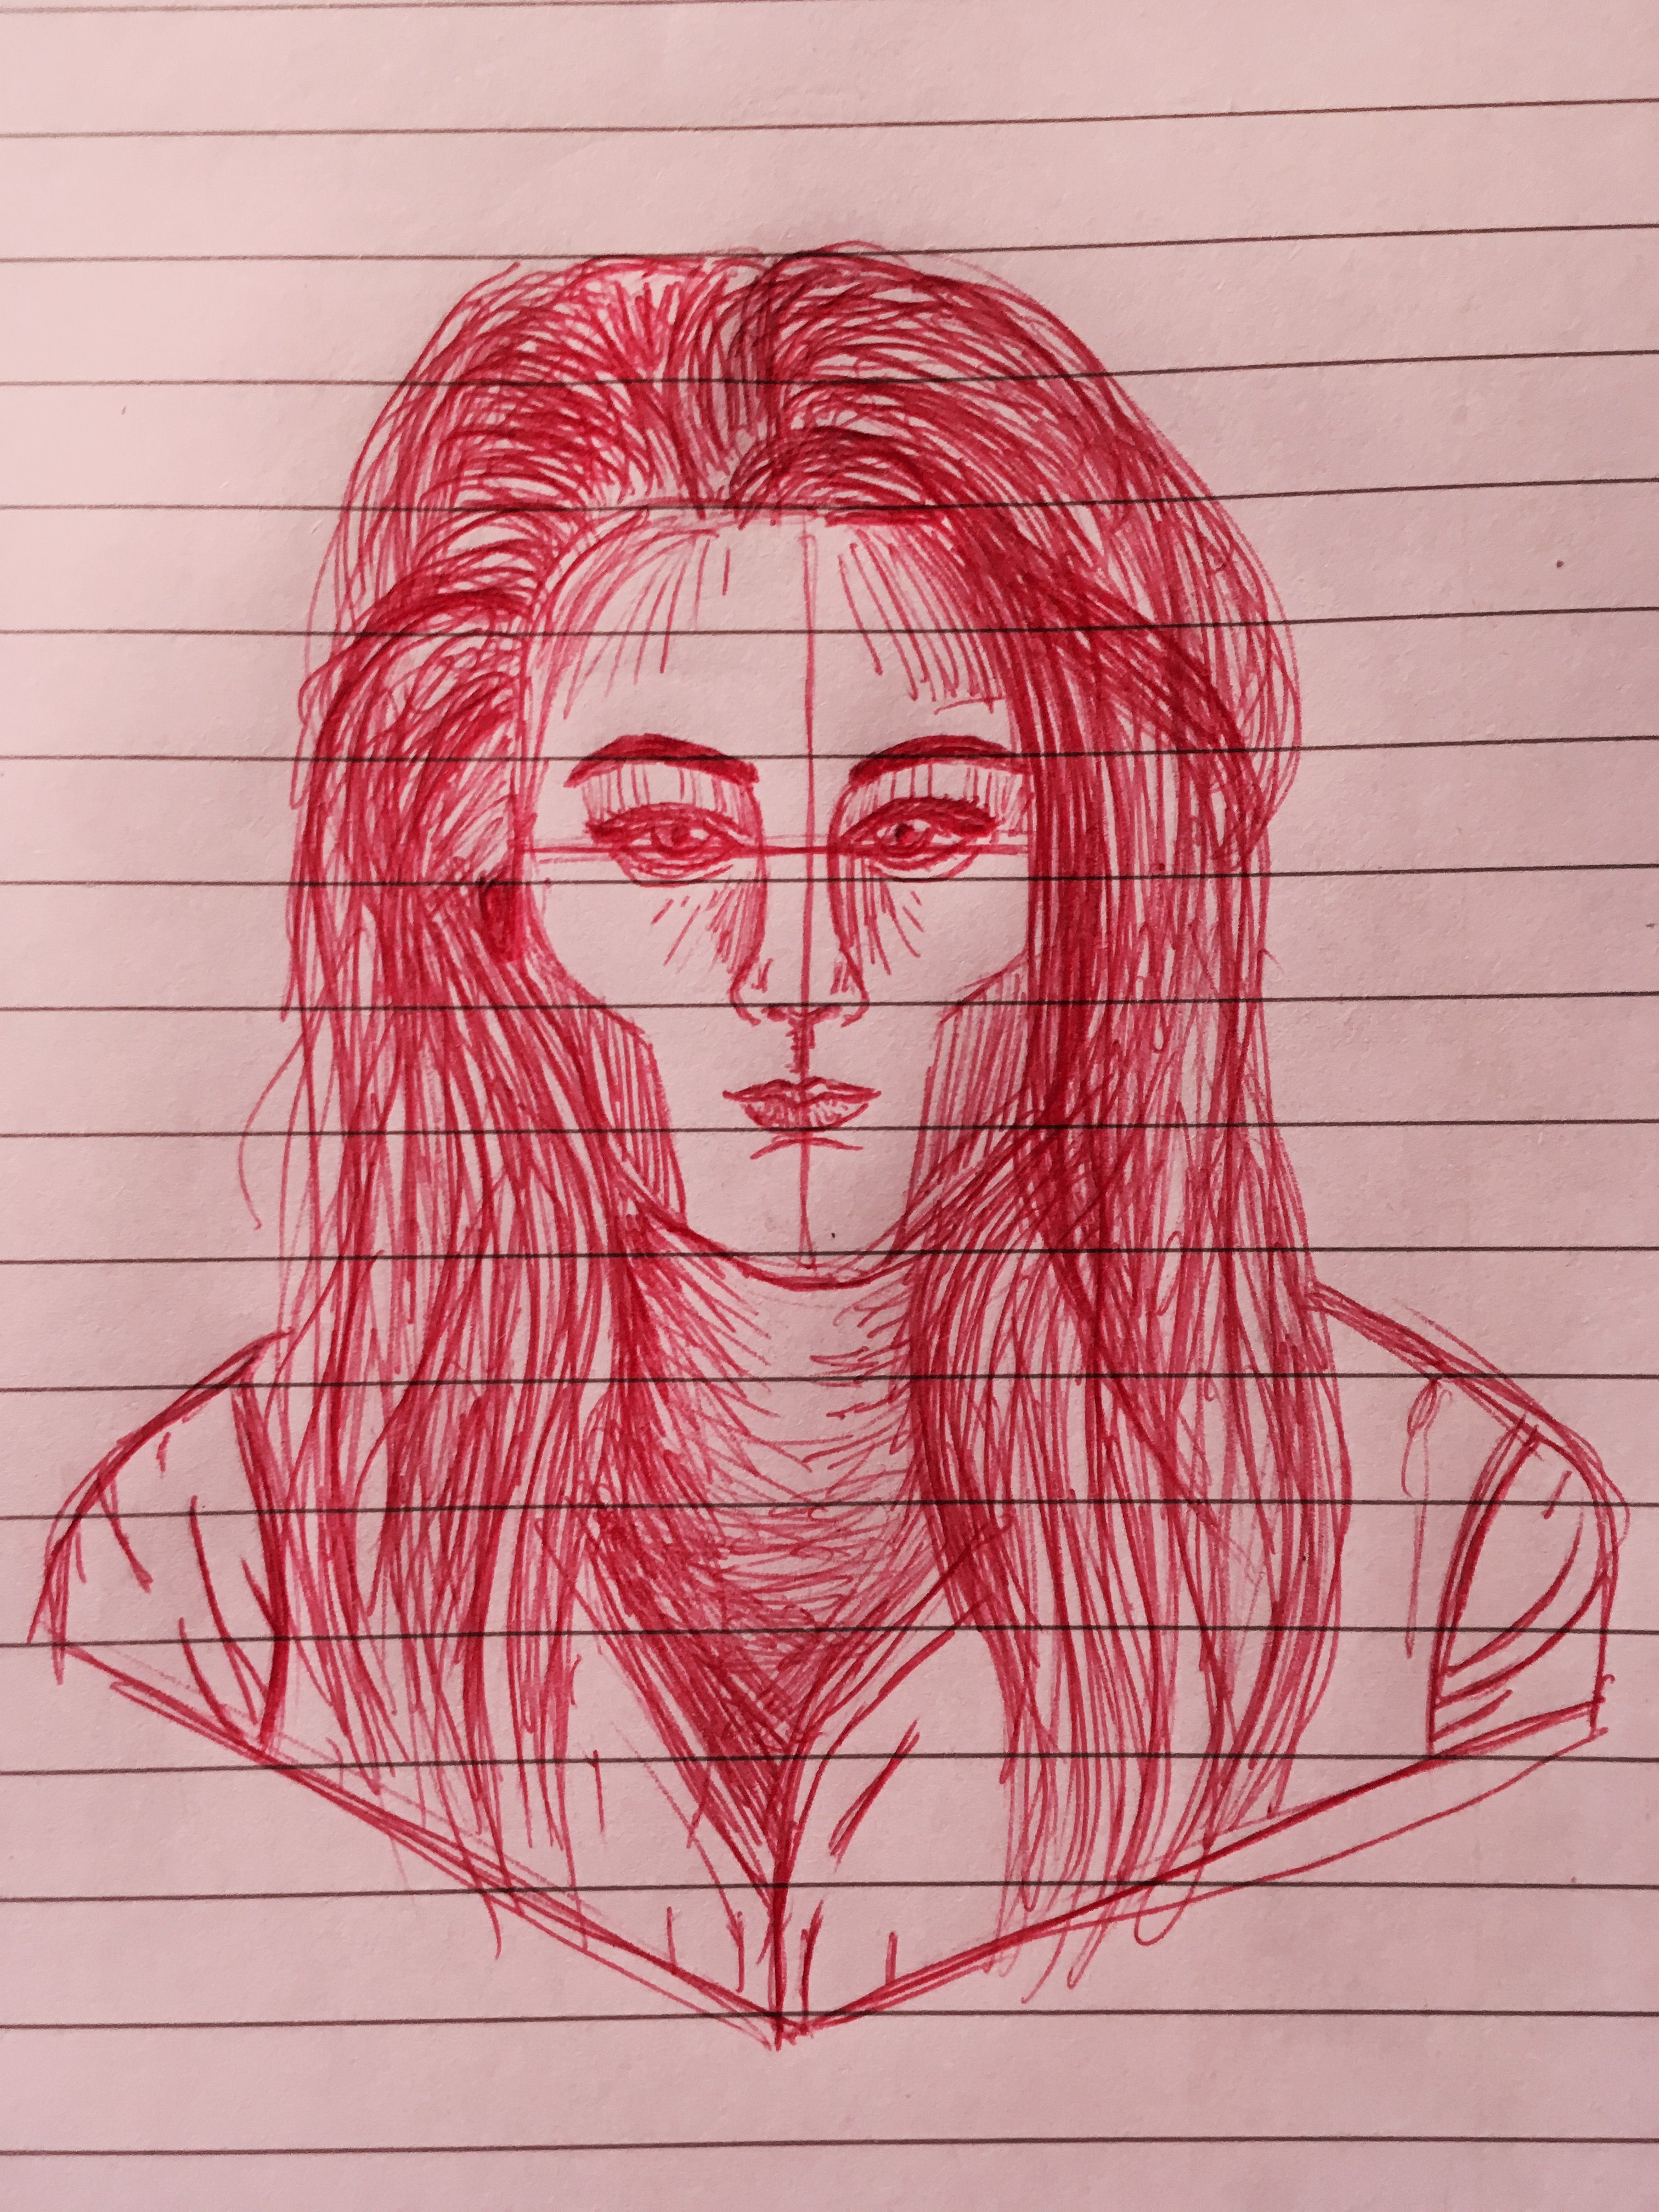 Biro Drawing Little Red By Danidedestroyer Me Biro Drawing Drawings Artwork